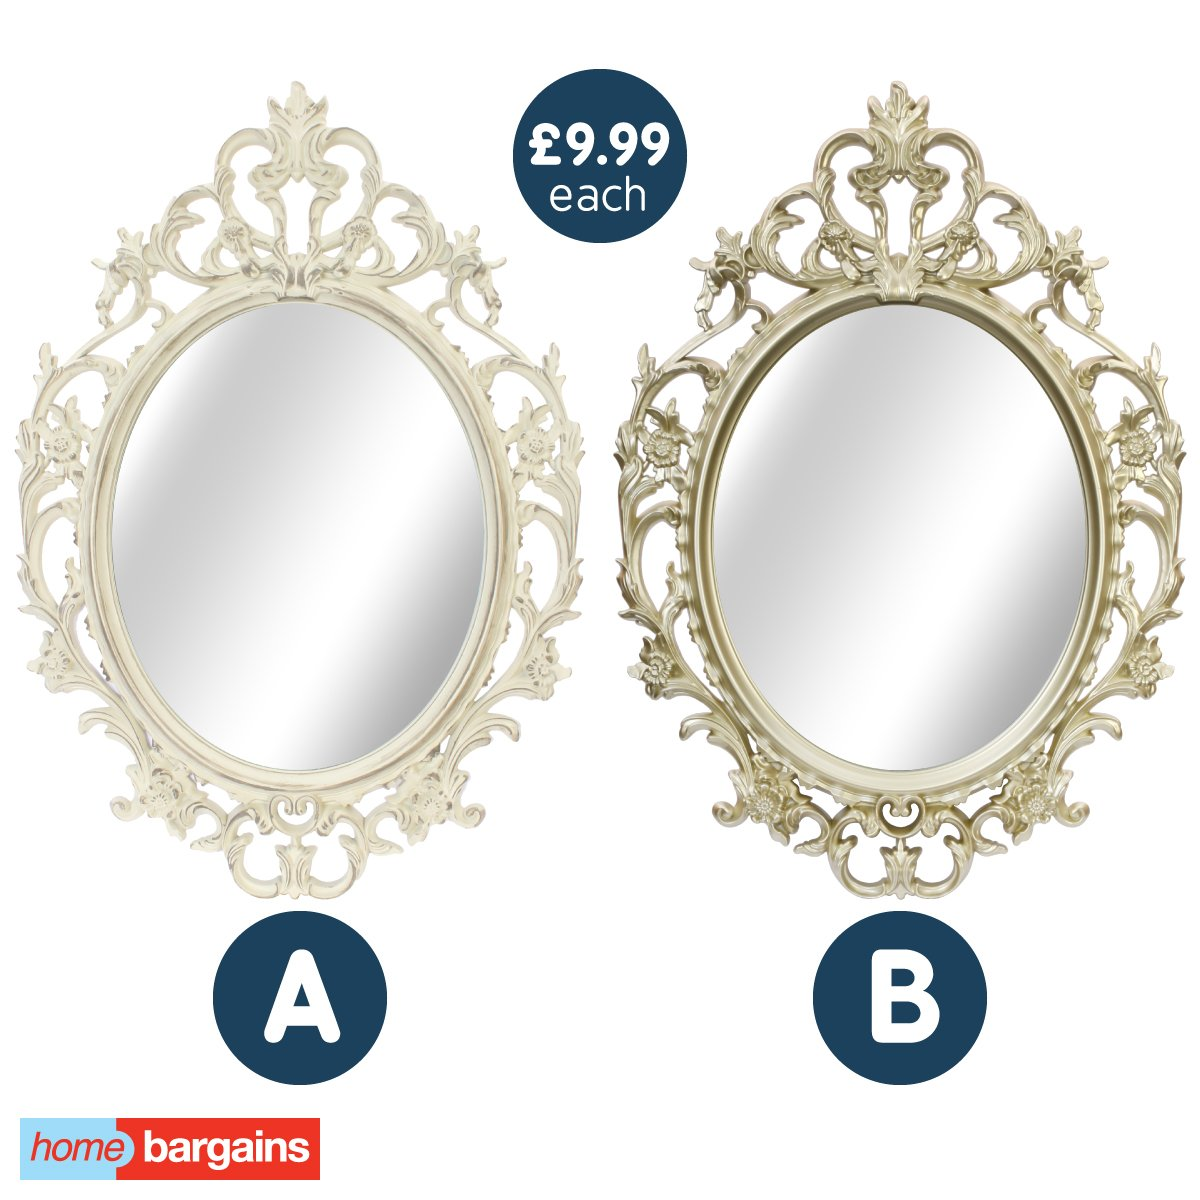 Home Bargains On Twitter Vote Now A Or B Which Of Our Antique Mirrors Would You Love To Hang On Your Wall